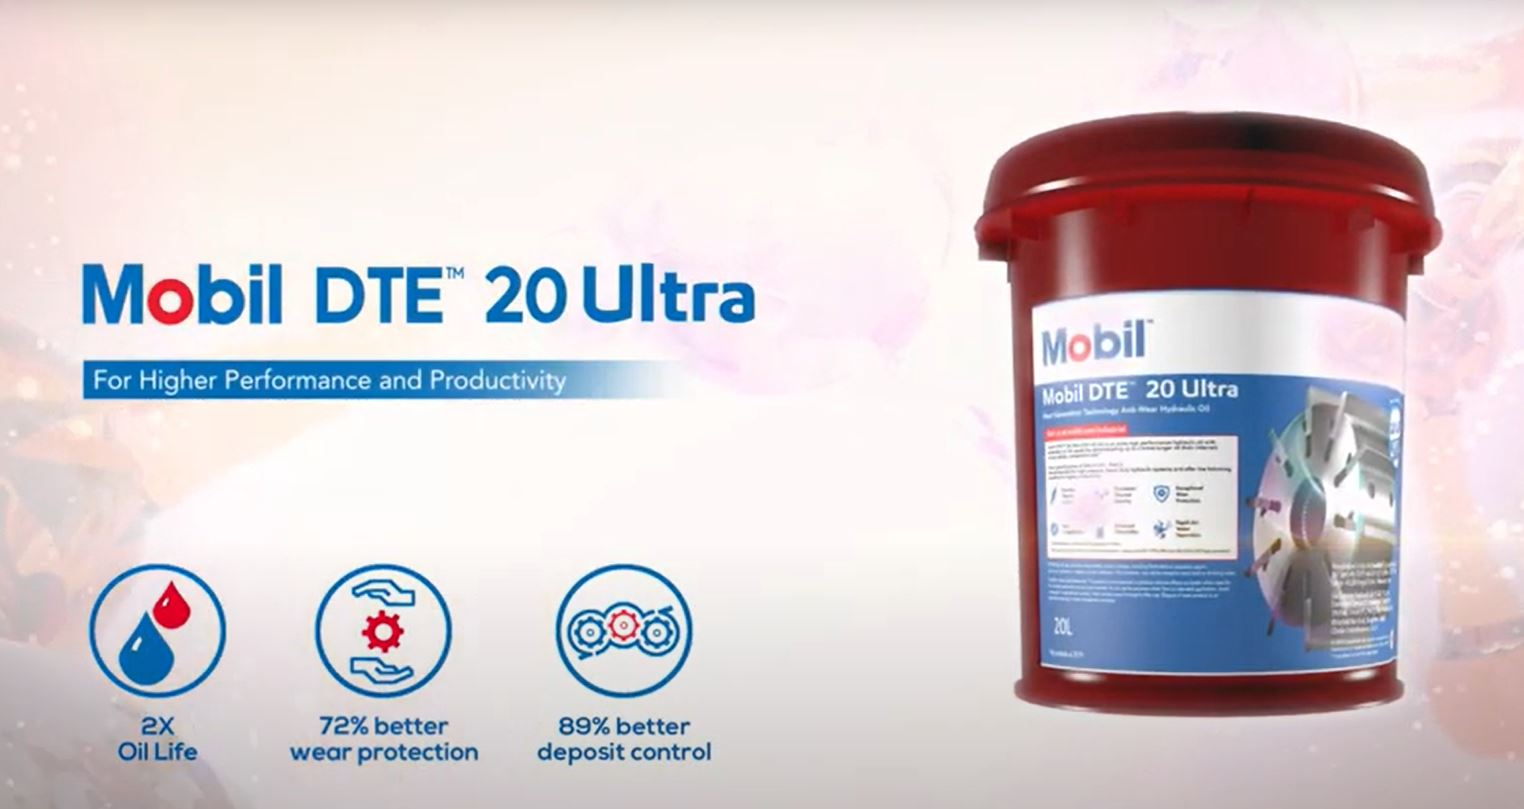 Product update: introduction Mobil DTE™ 20 Ultra Series as replacement of Mobil DTE 20 Series